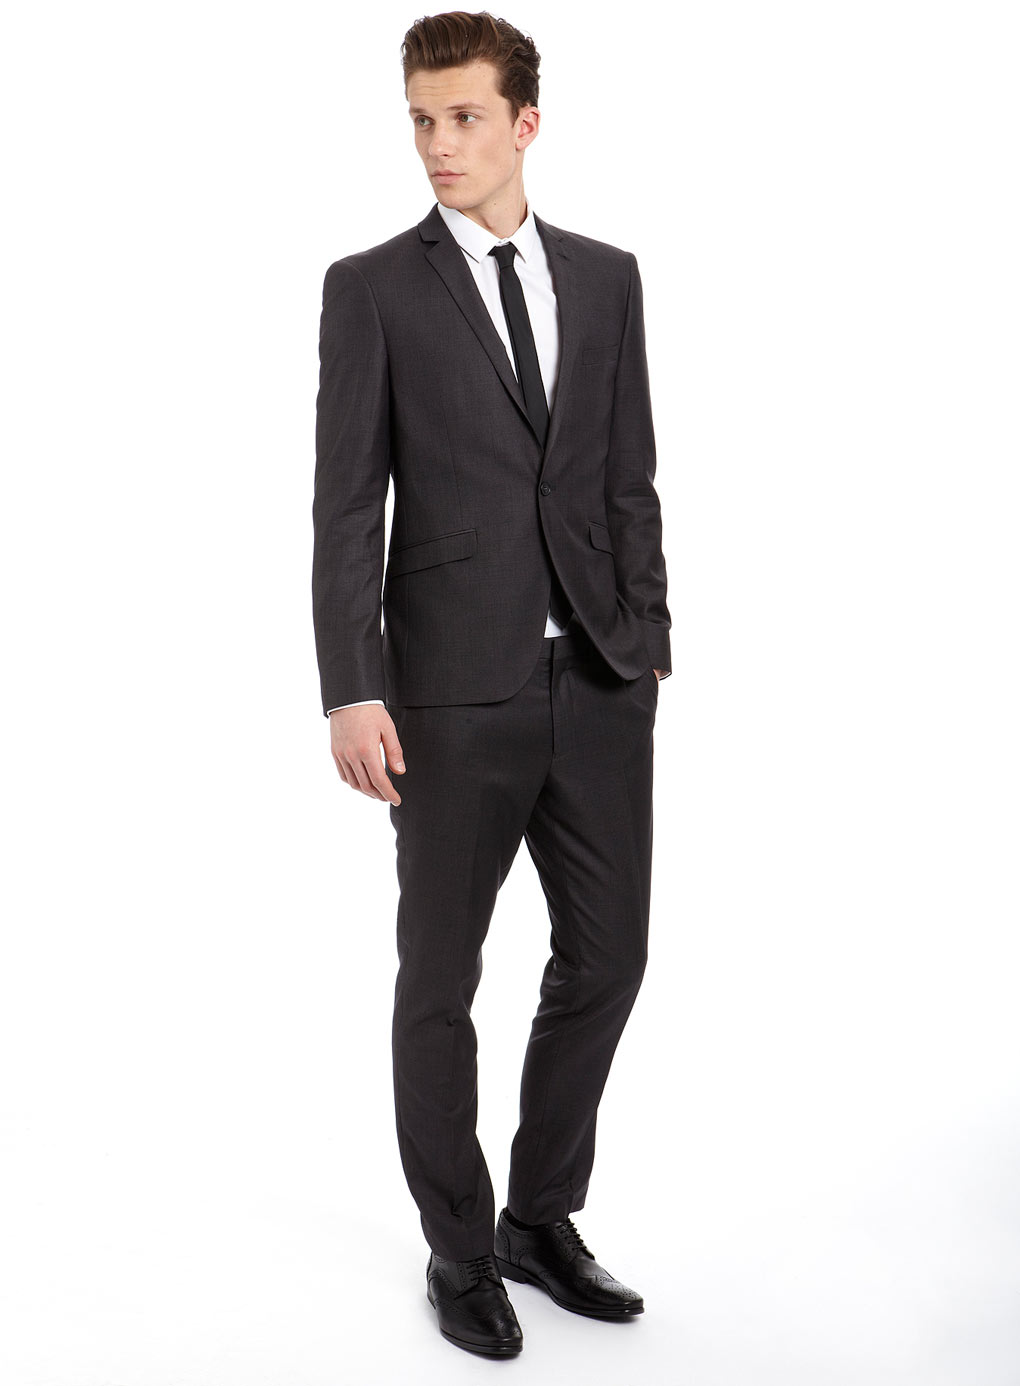 2 Piece Grey Skinny Fit Suit